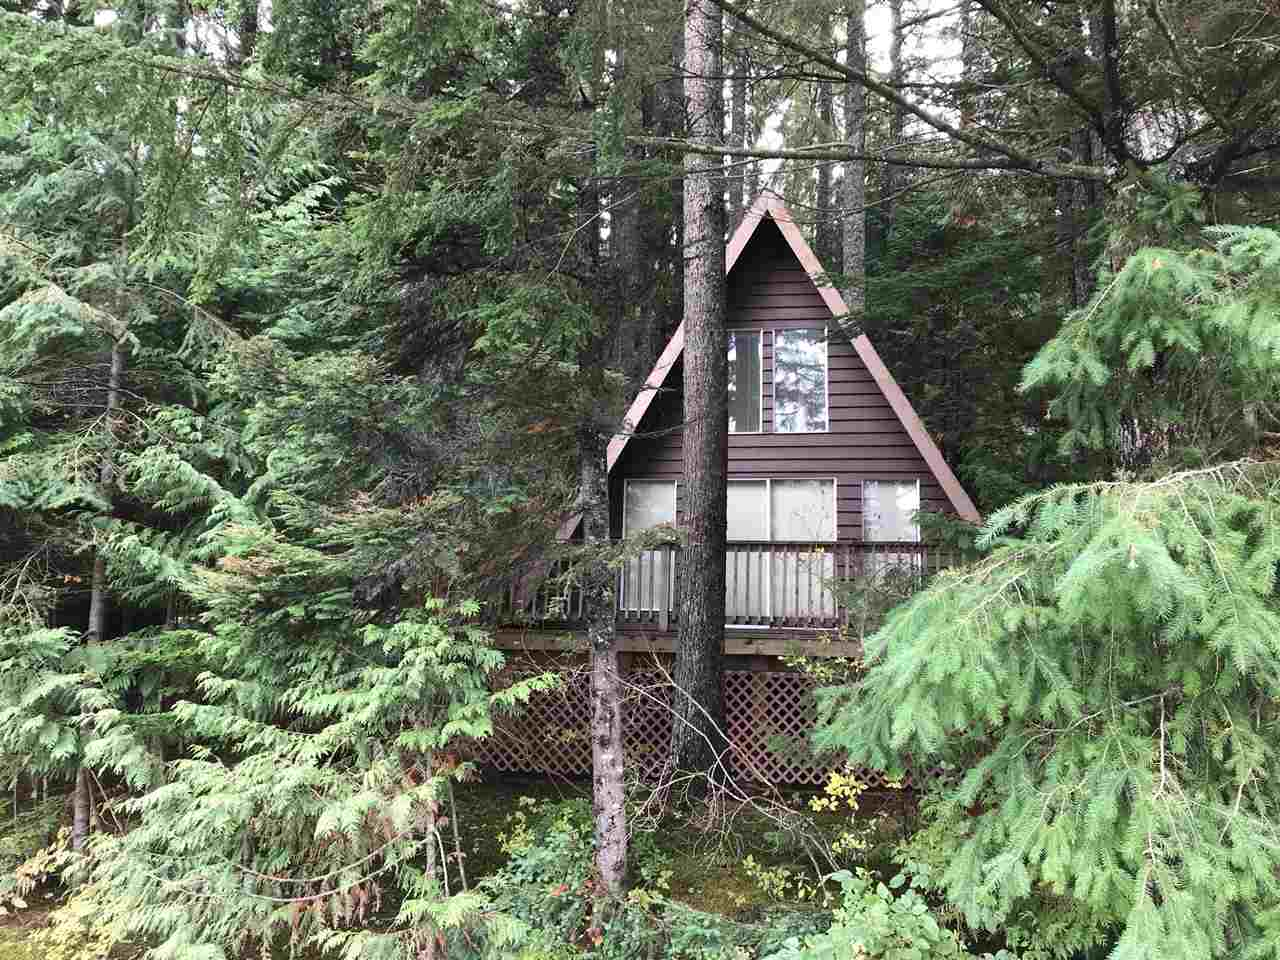 Cute as a button A-Frame on freehold lot! Features 3 sky-lights, 1 bedroom, loft, 3 piece bath, large living room with economical wood stove. Don't miss this one, a great weekend get-away just 2 hours from Vancouver & 1/2 hour from Manning. Situated 1/2 hr from Manning Park and just 15 min from Hope with easy access to trails and highway, makes this solid home ideal for either full-time living or as a four-season recreational retreat. Hiking, snowmobiling, fishing, biking, skiing, and quading, this place is a perfect get-away.